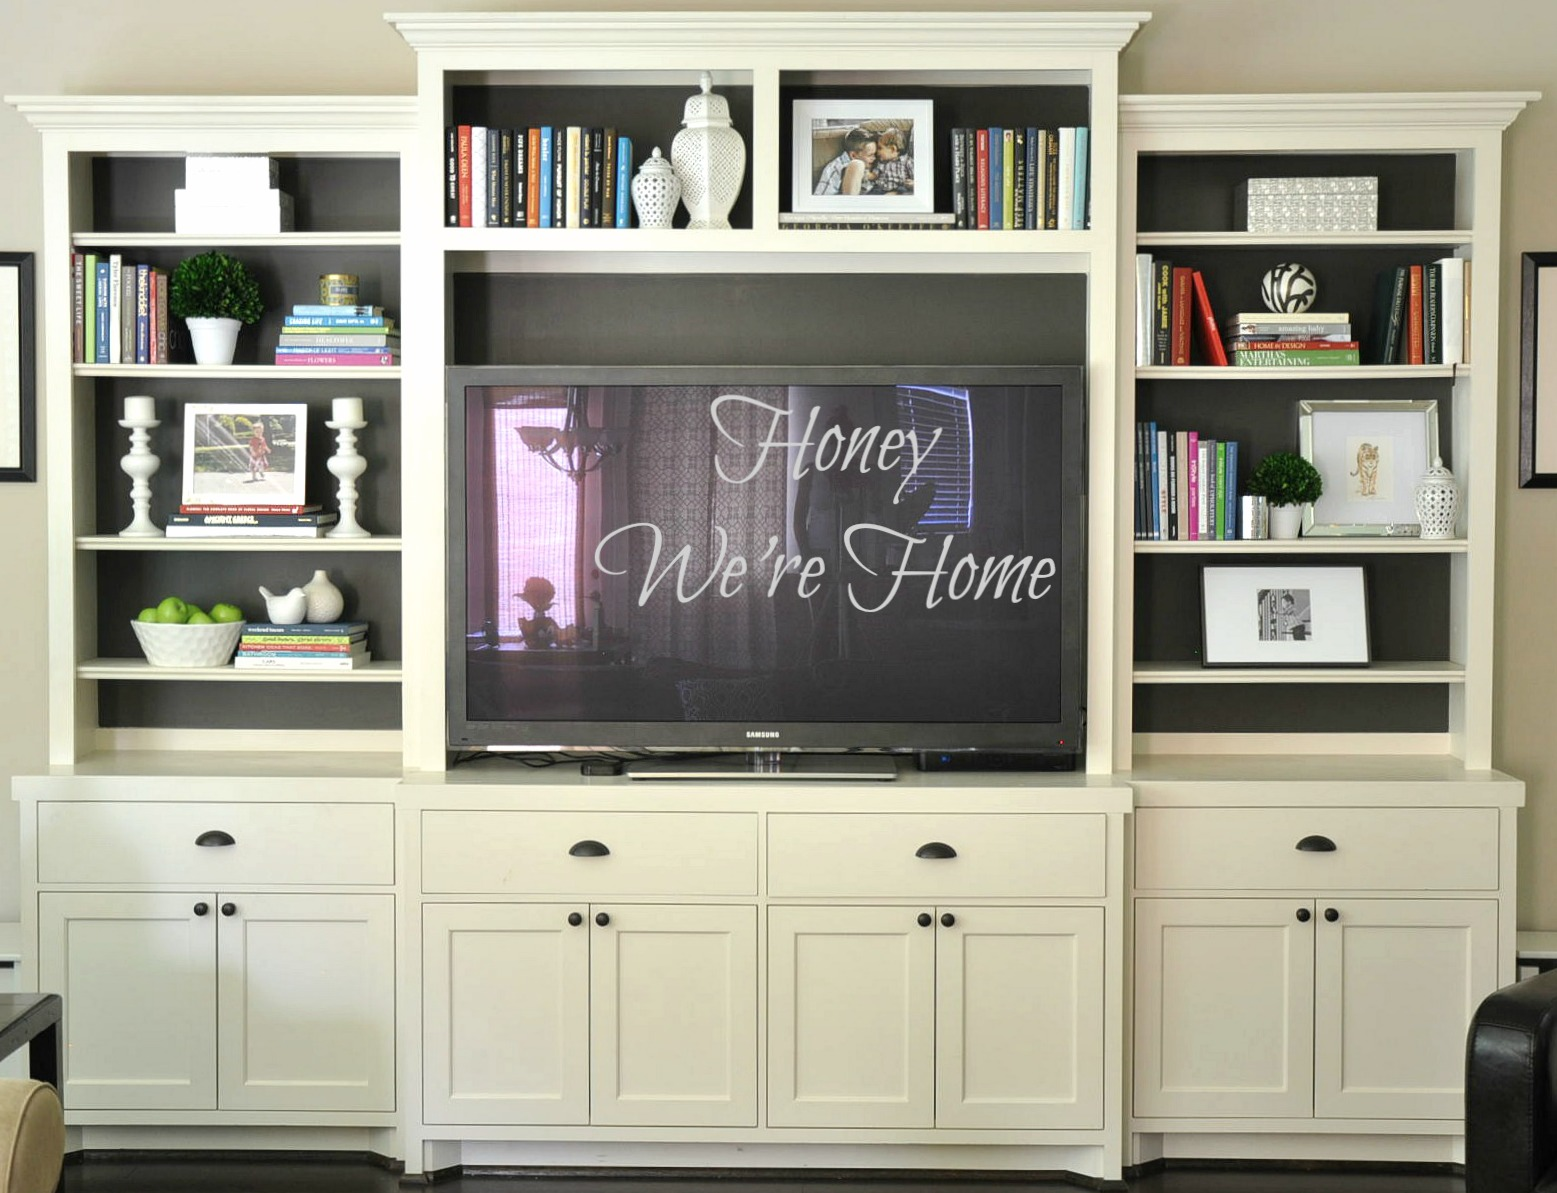 painted media cabinet bookshelf styling honey were home - Entertainment Centers With Bookshelves